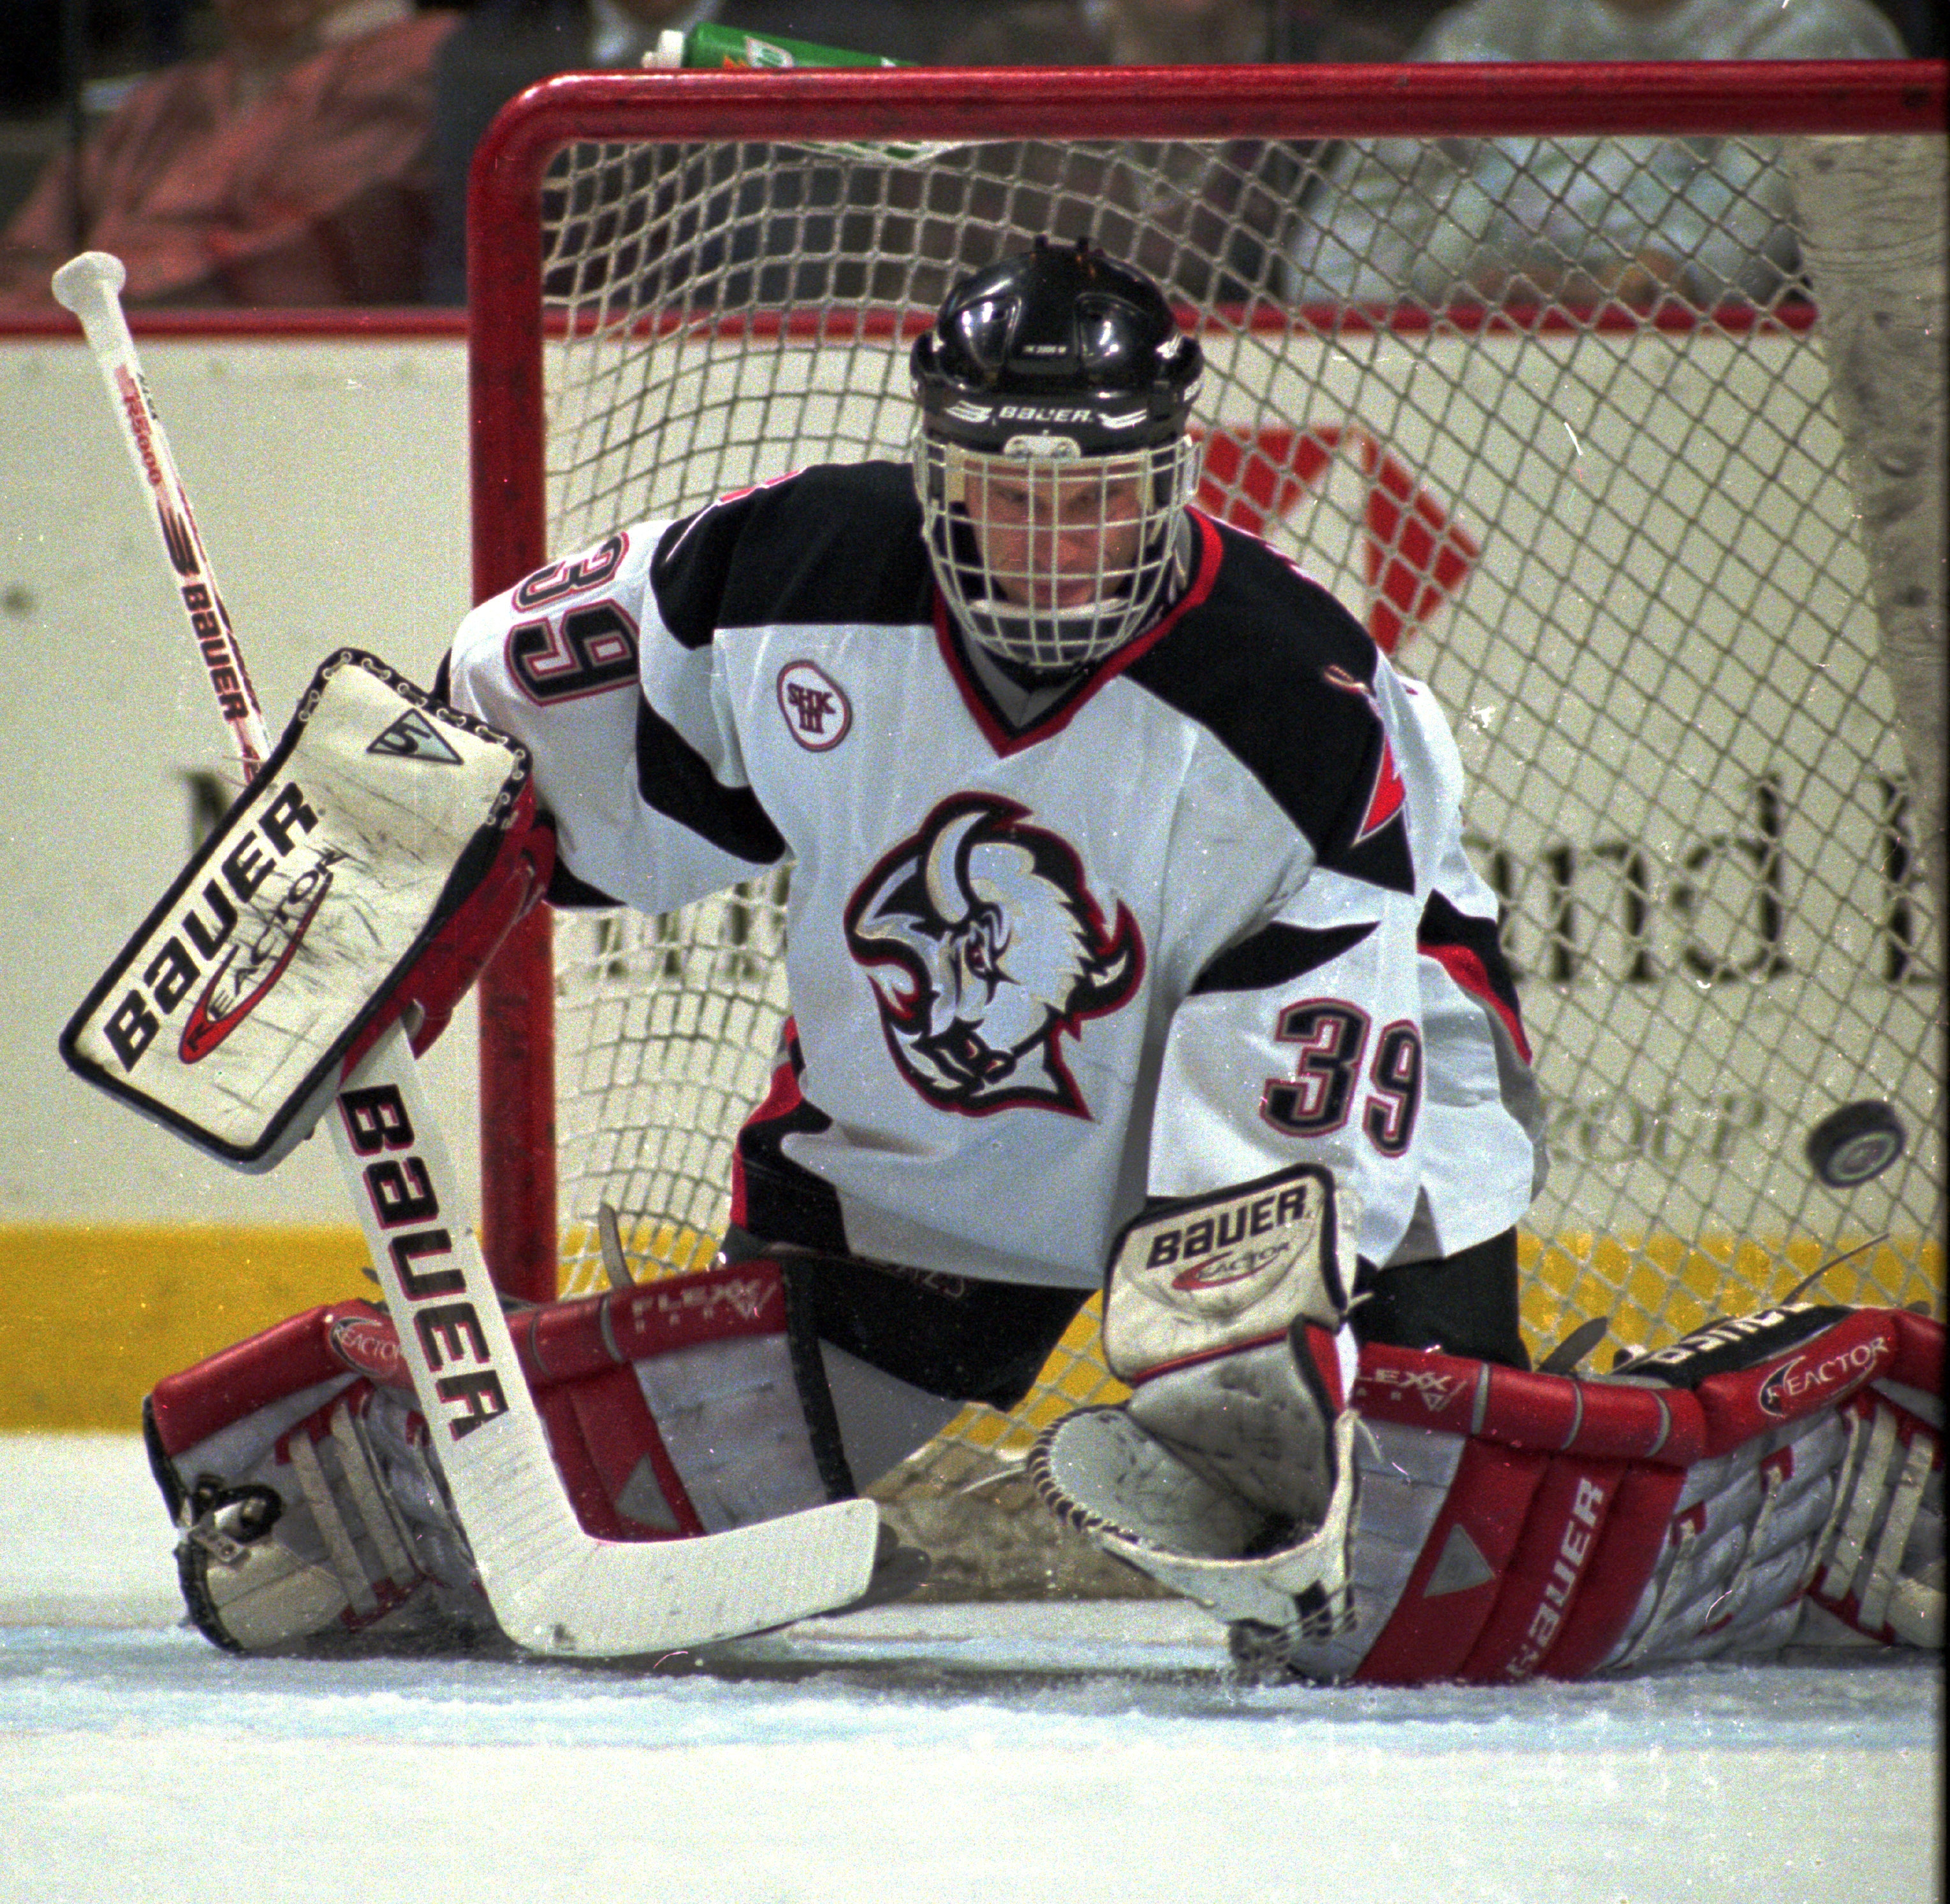 Sabres Hall of Fame goalie Dominik Hasek headlines an esteemed group of first-year players eligible for induction into the Hockey Hall of Fame. The list of inductees will be announced Monday. (Harry Scull Jr. / Buffalo News file photo).